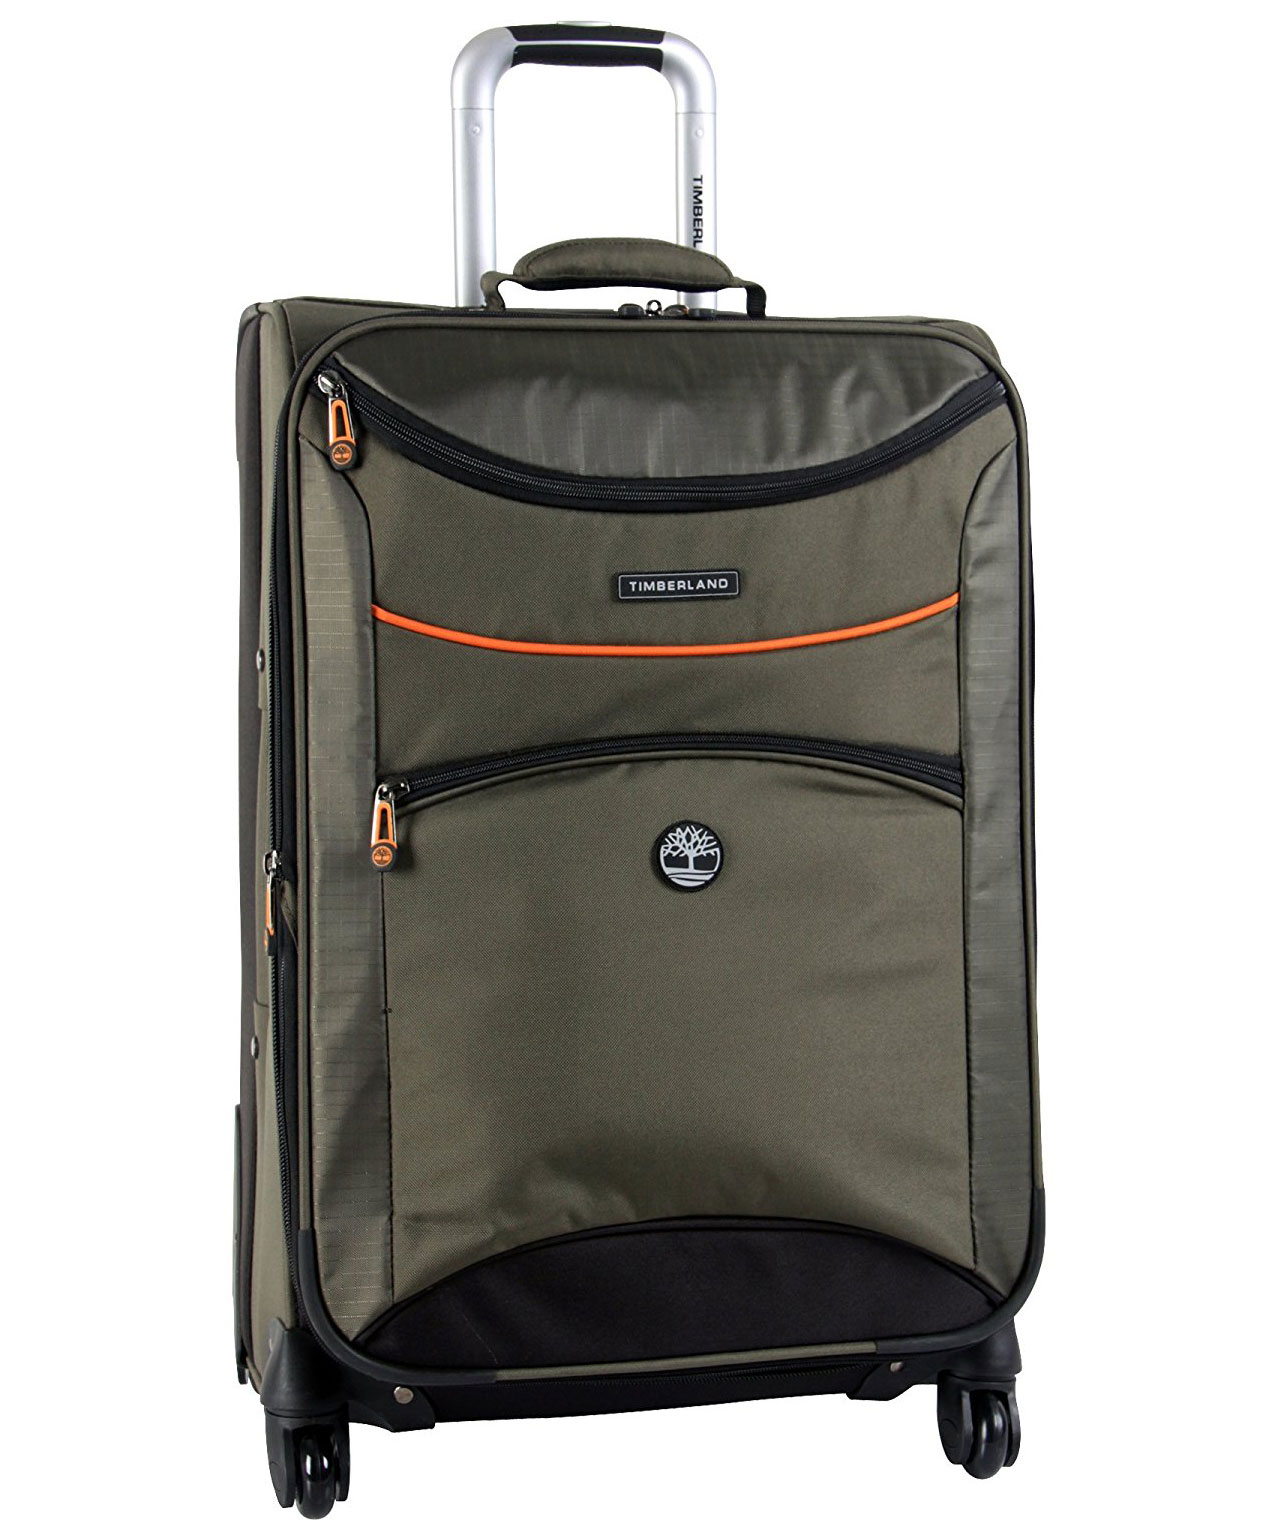 Timberland Luggage Route 4 24 Inch Expandable Spinner